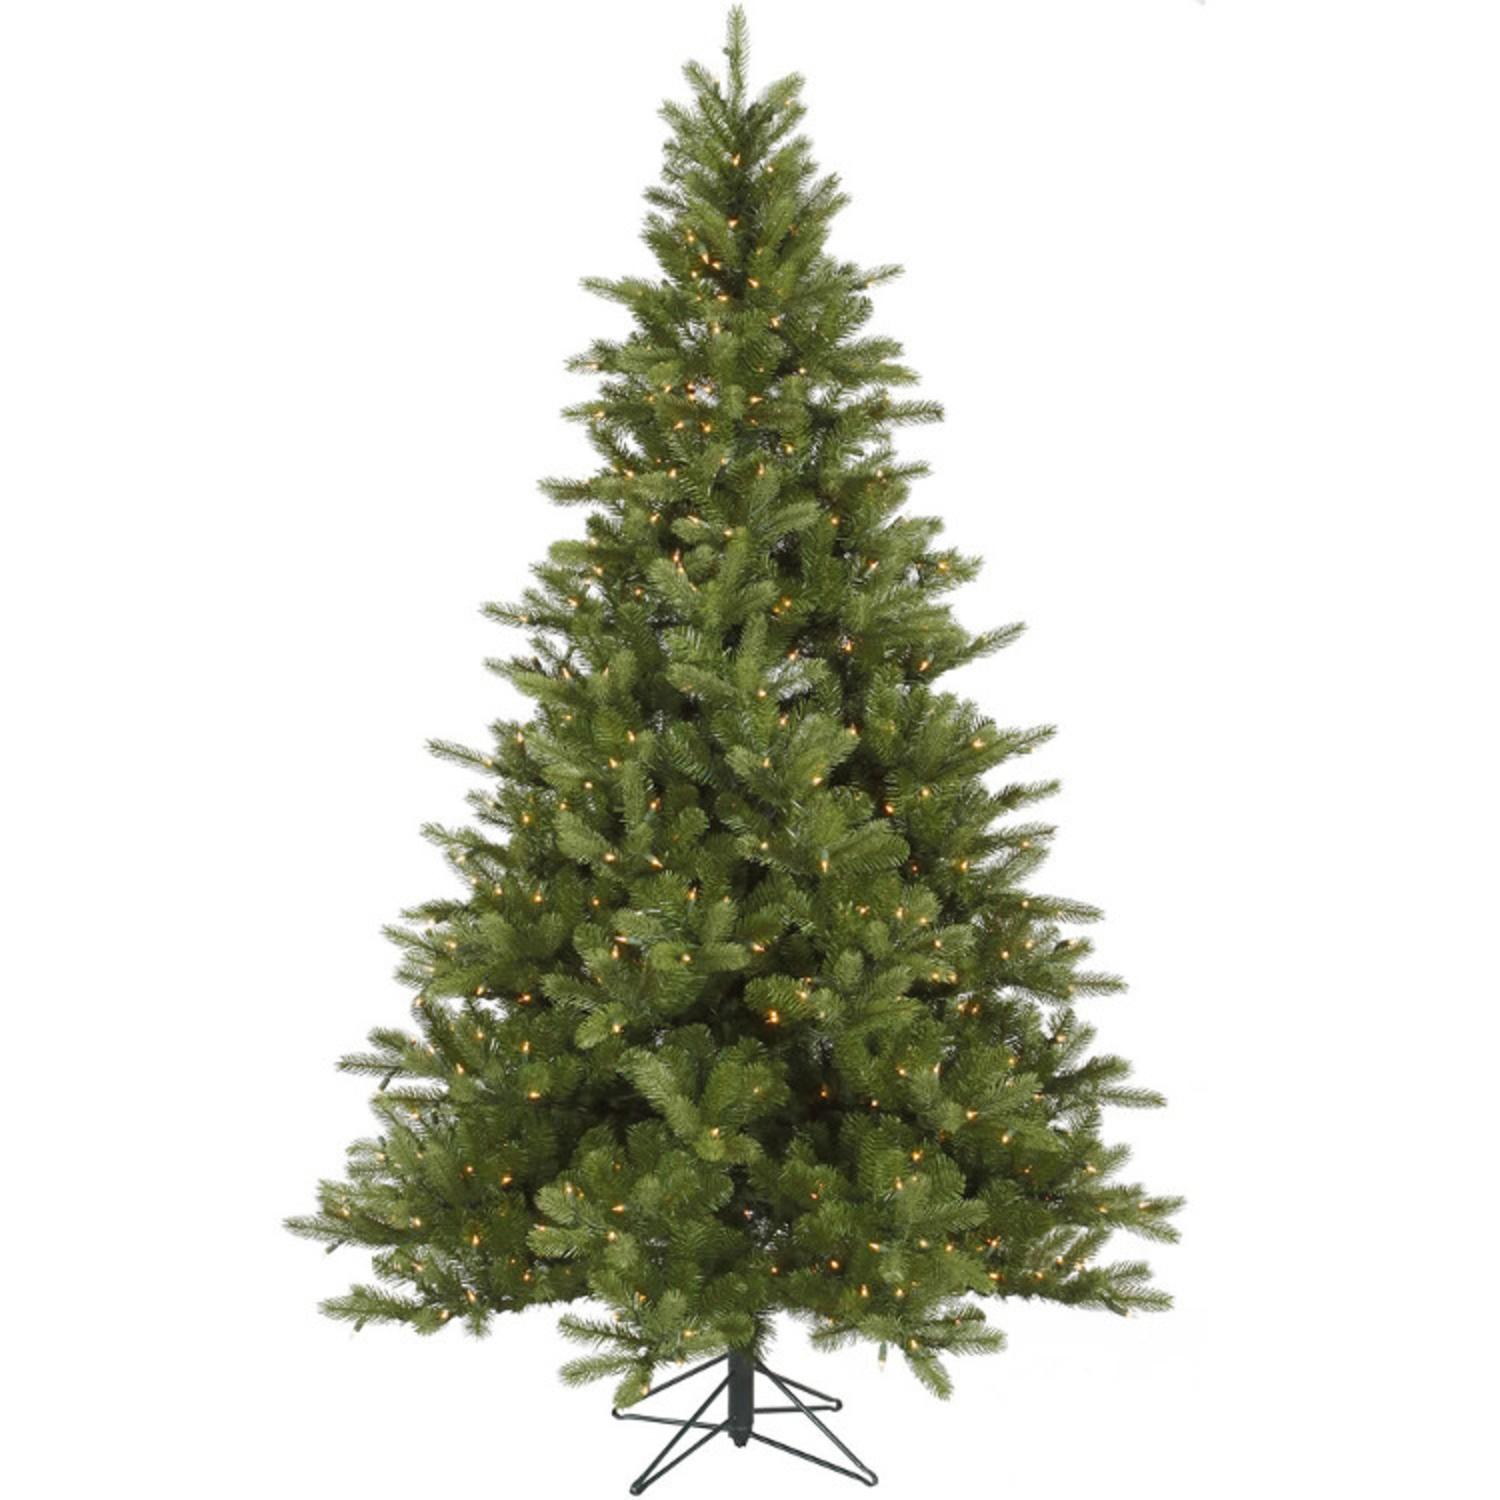 6.5' Pre-Lit King Spruce Artificial Christmas Tree - Dura-Lit Clear Lights